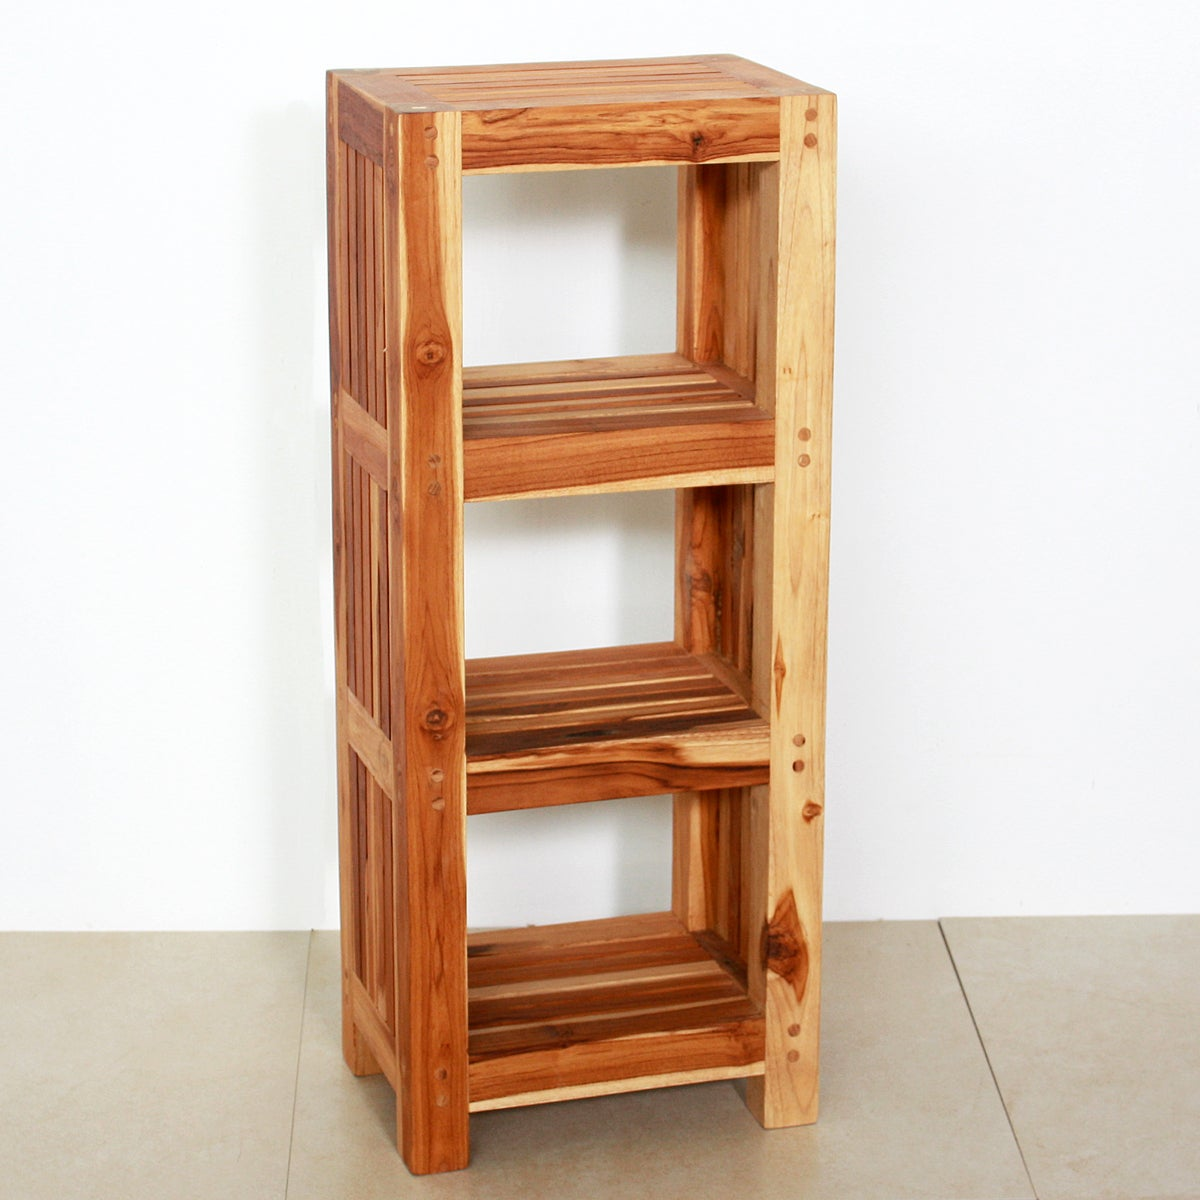 Handmade Teak Wood Shelf Tower Thailand Free